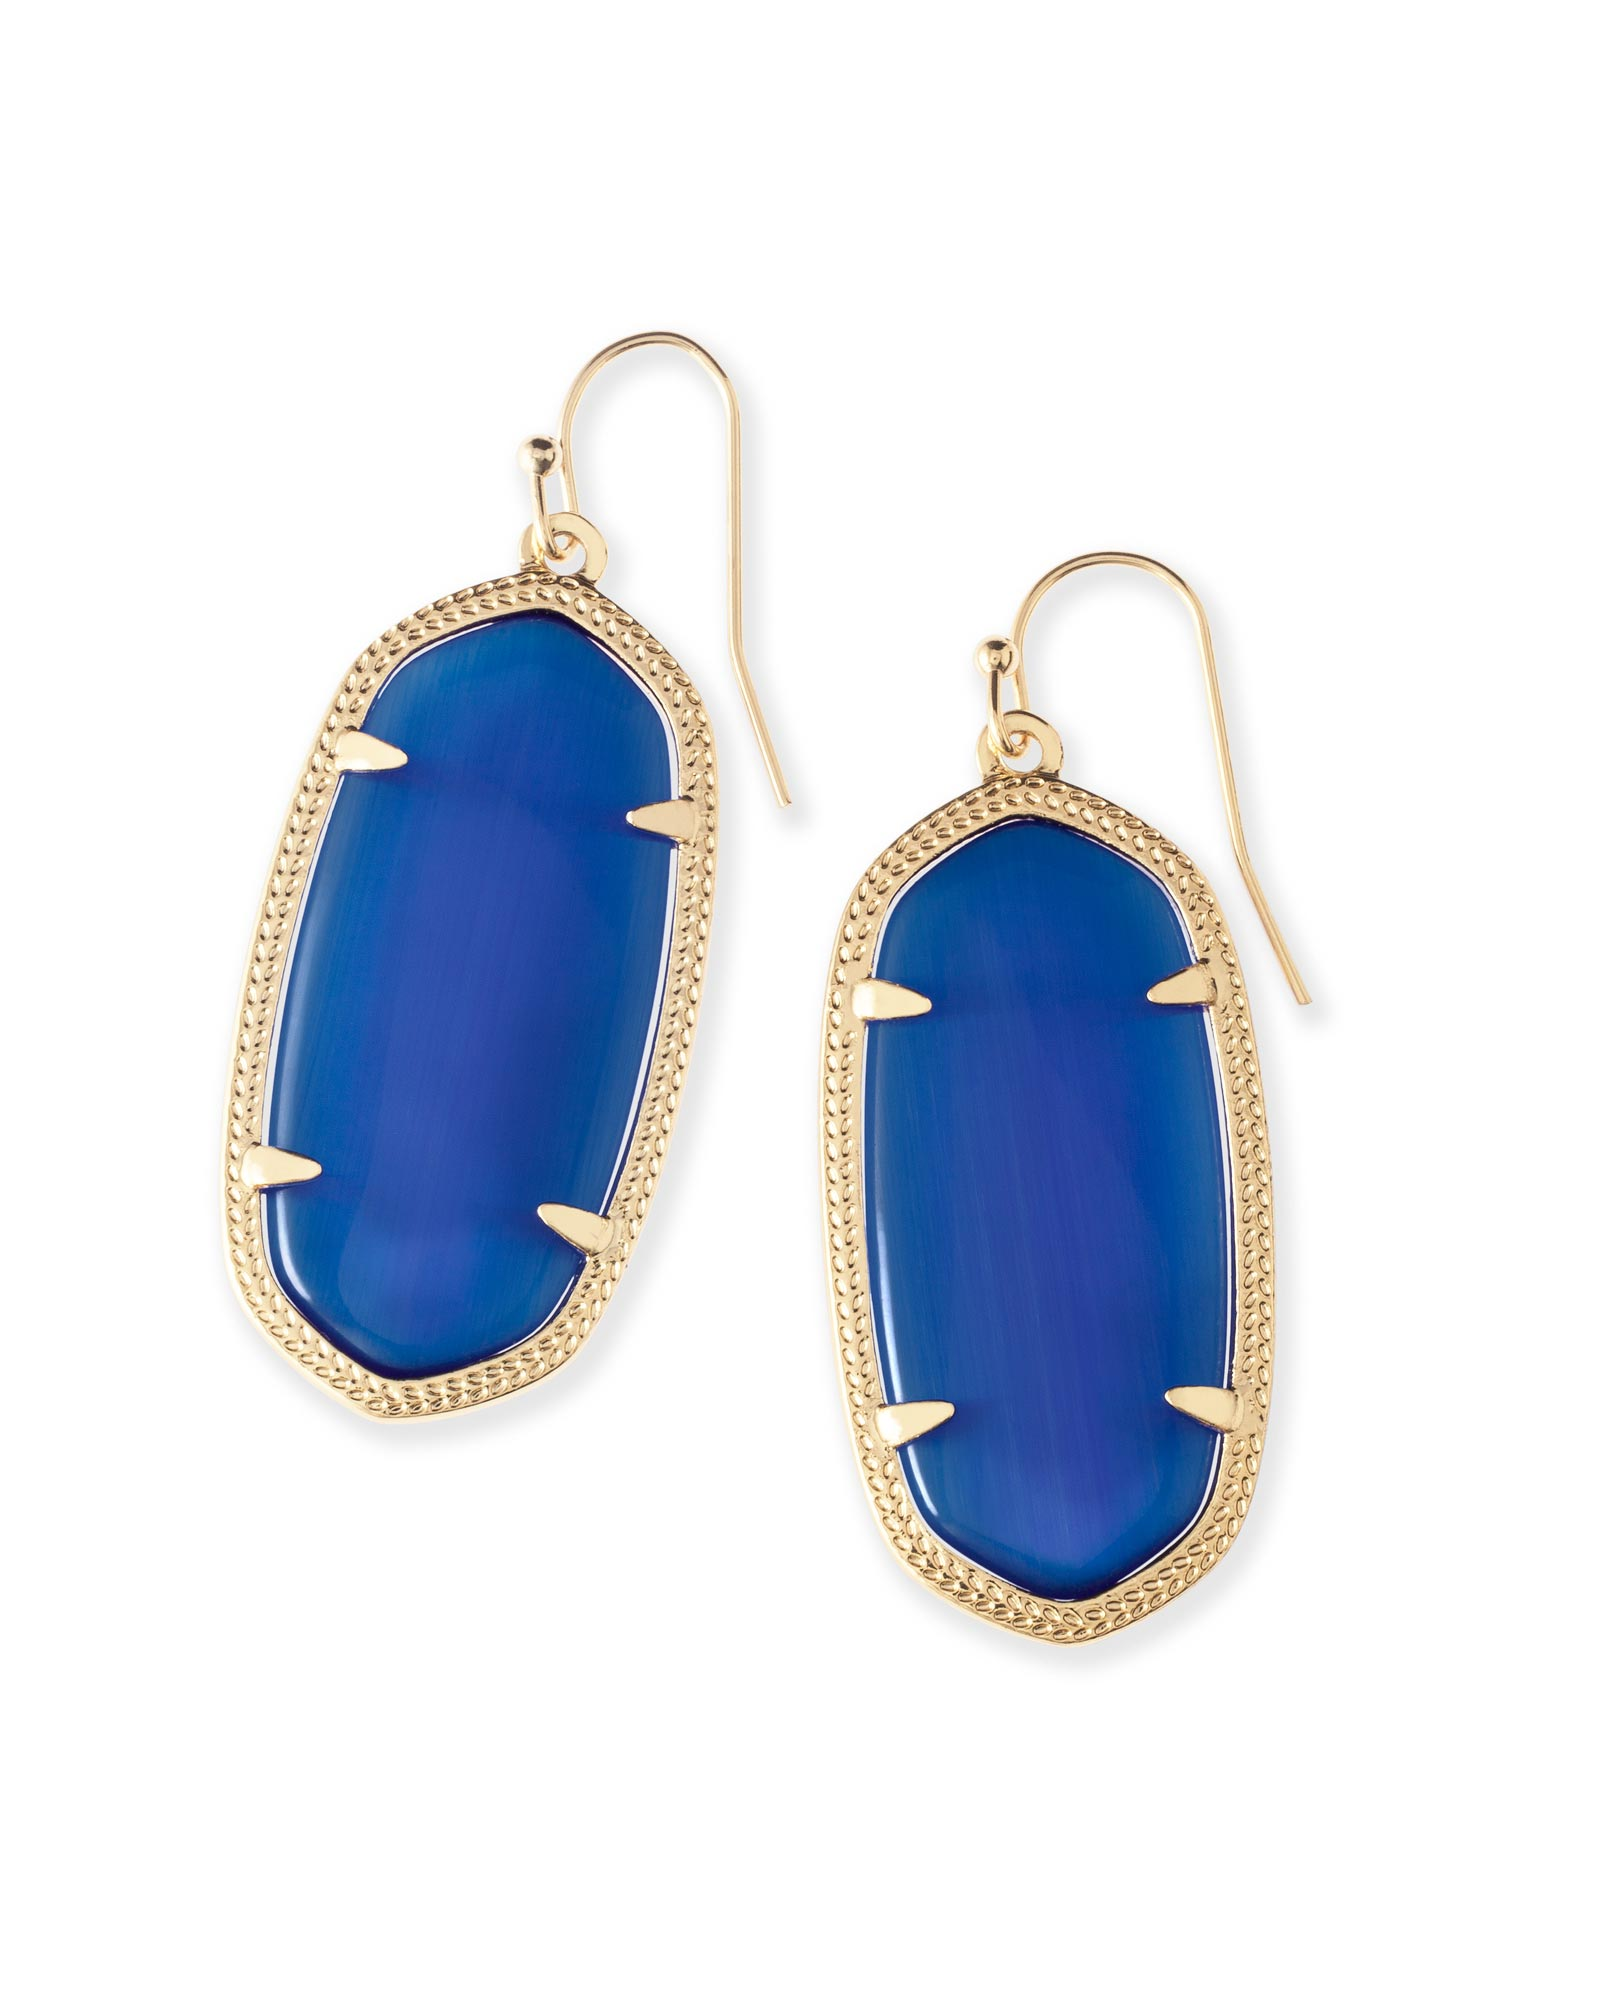 Elle Earrings in Navy Cat's Eye